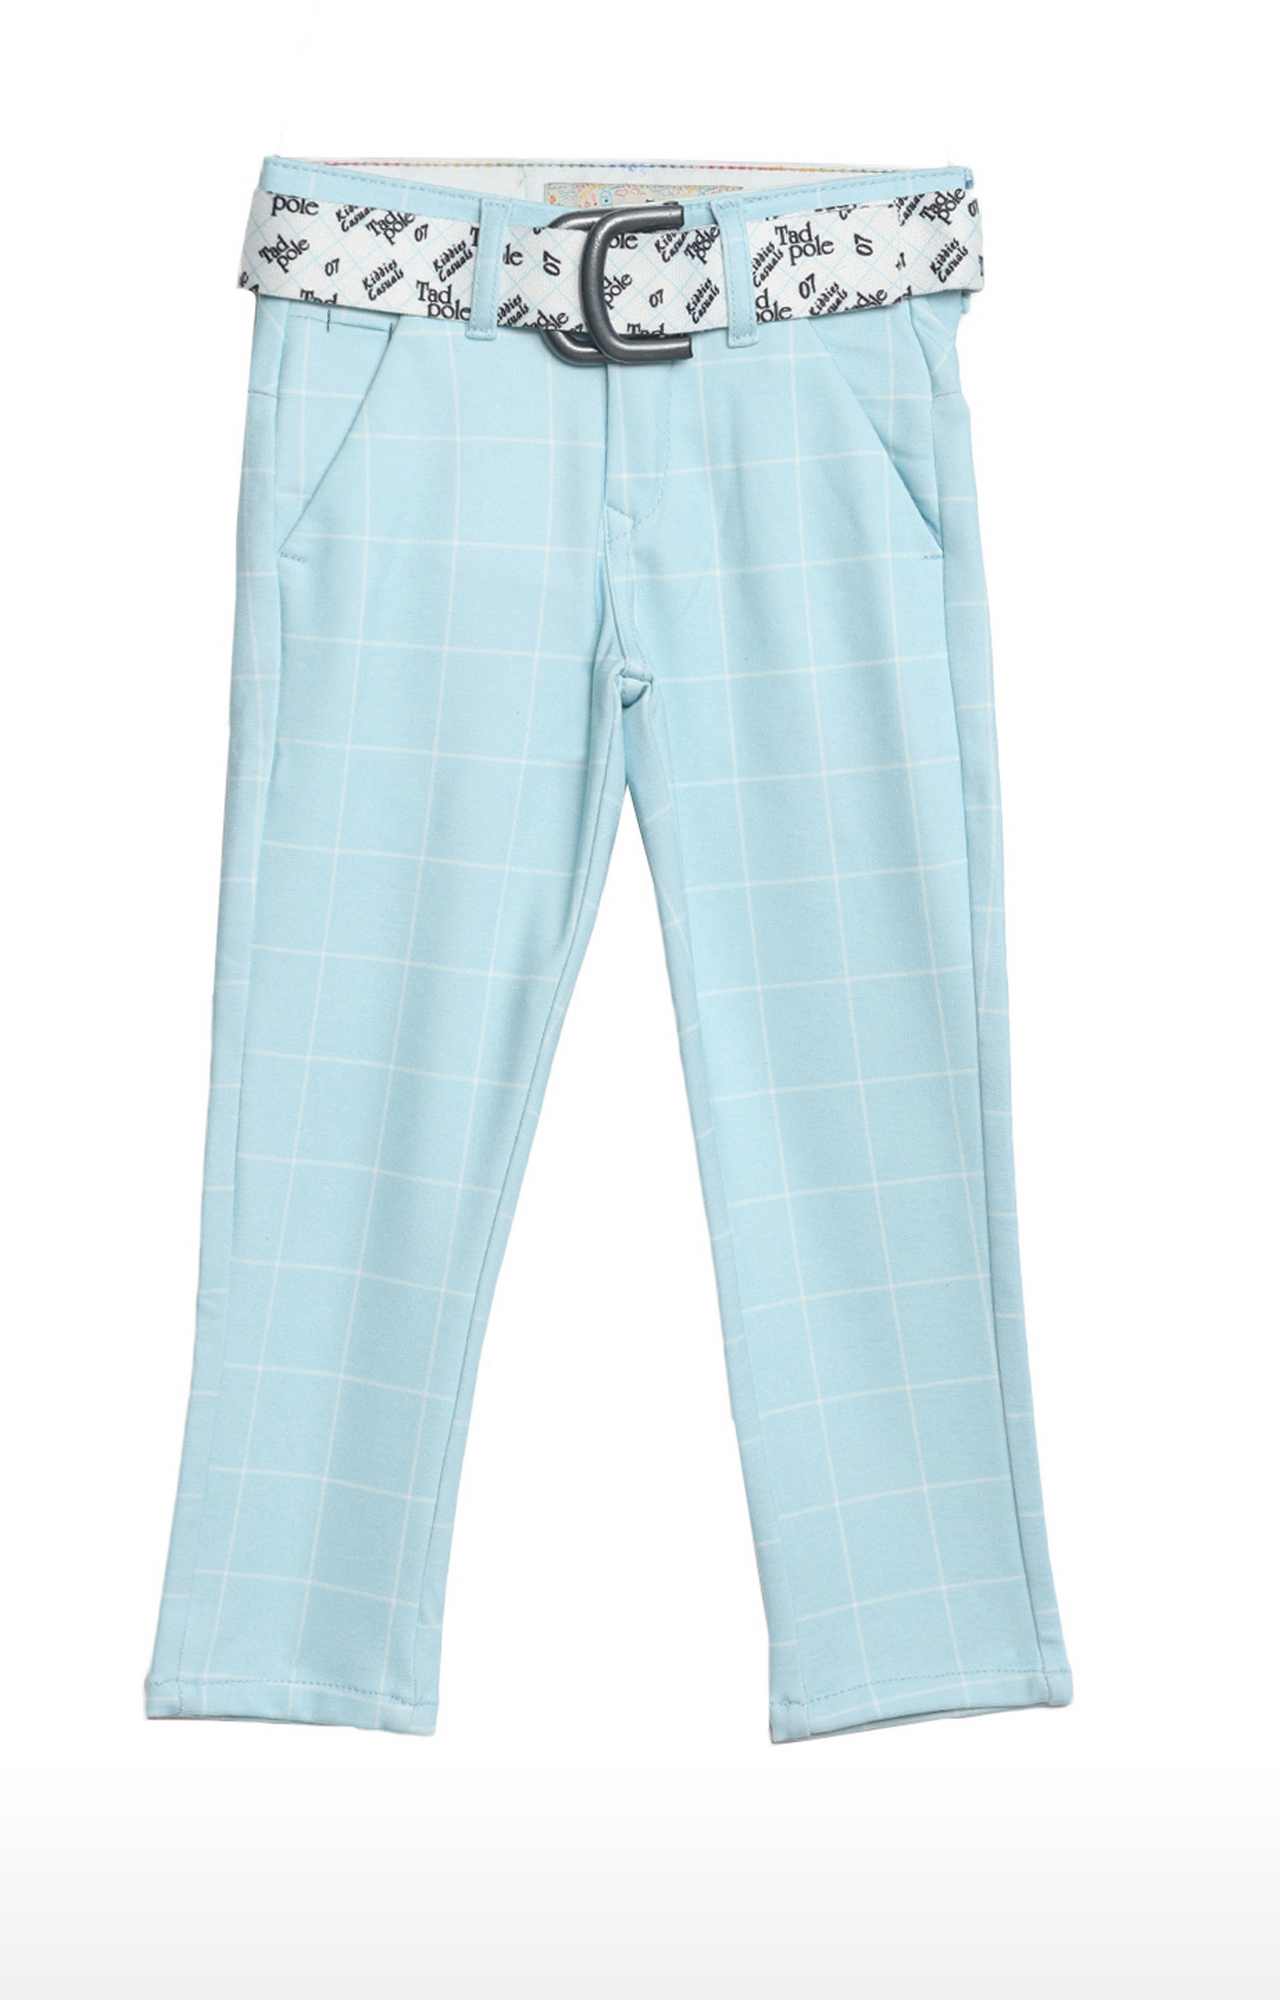 Tadpole   Blue Checked Regular-Fit Jeans